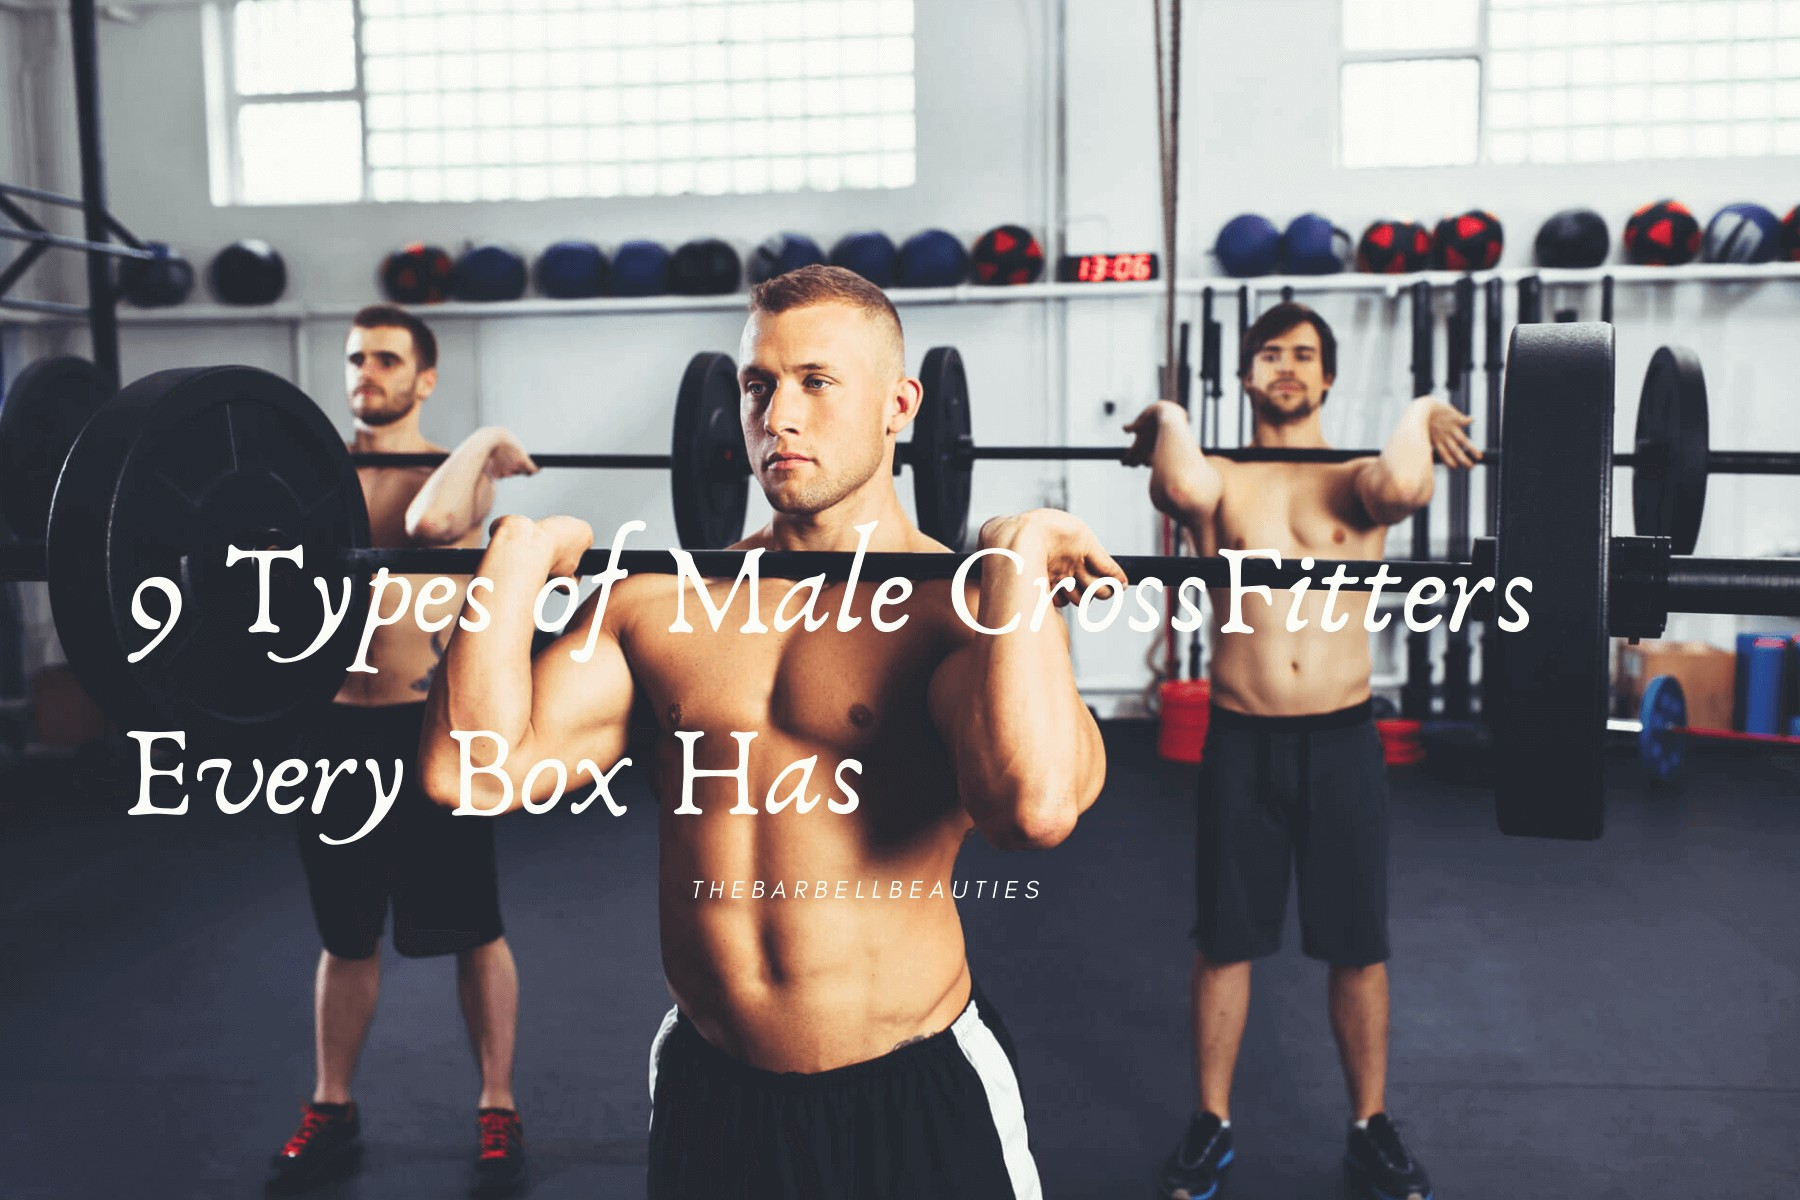 9 Types of Male CrossFitters Every Box Has